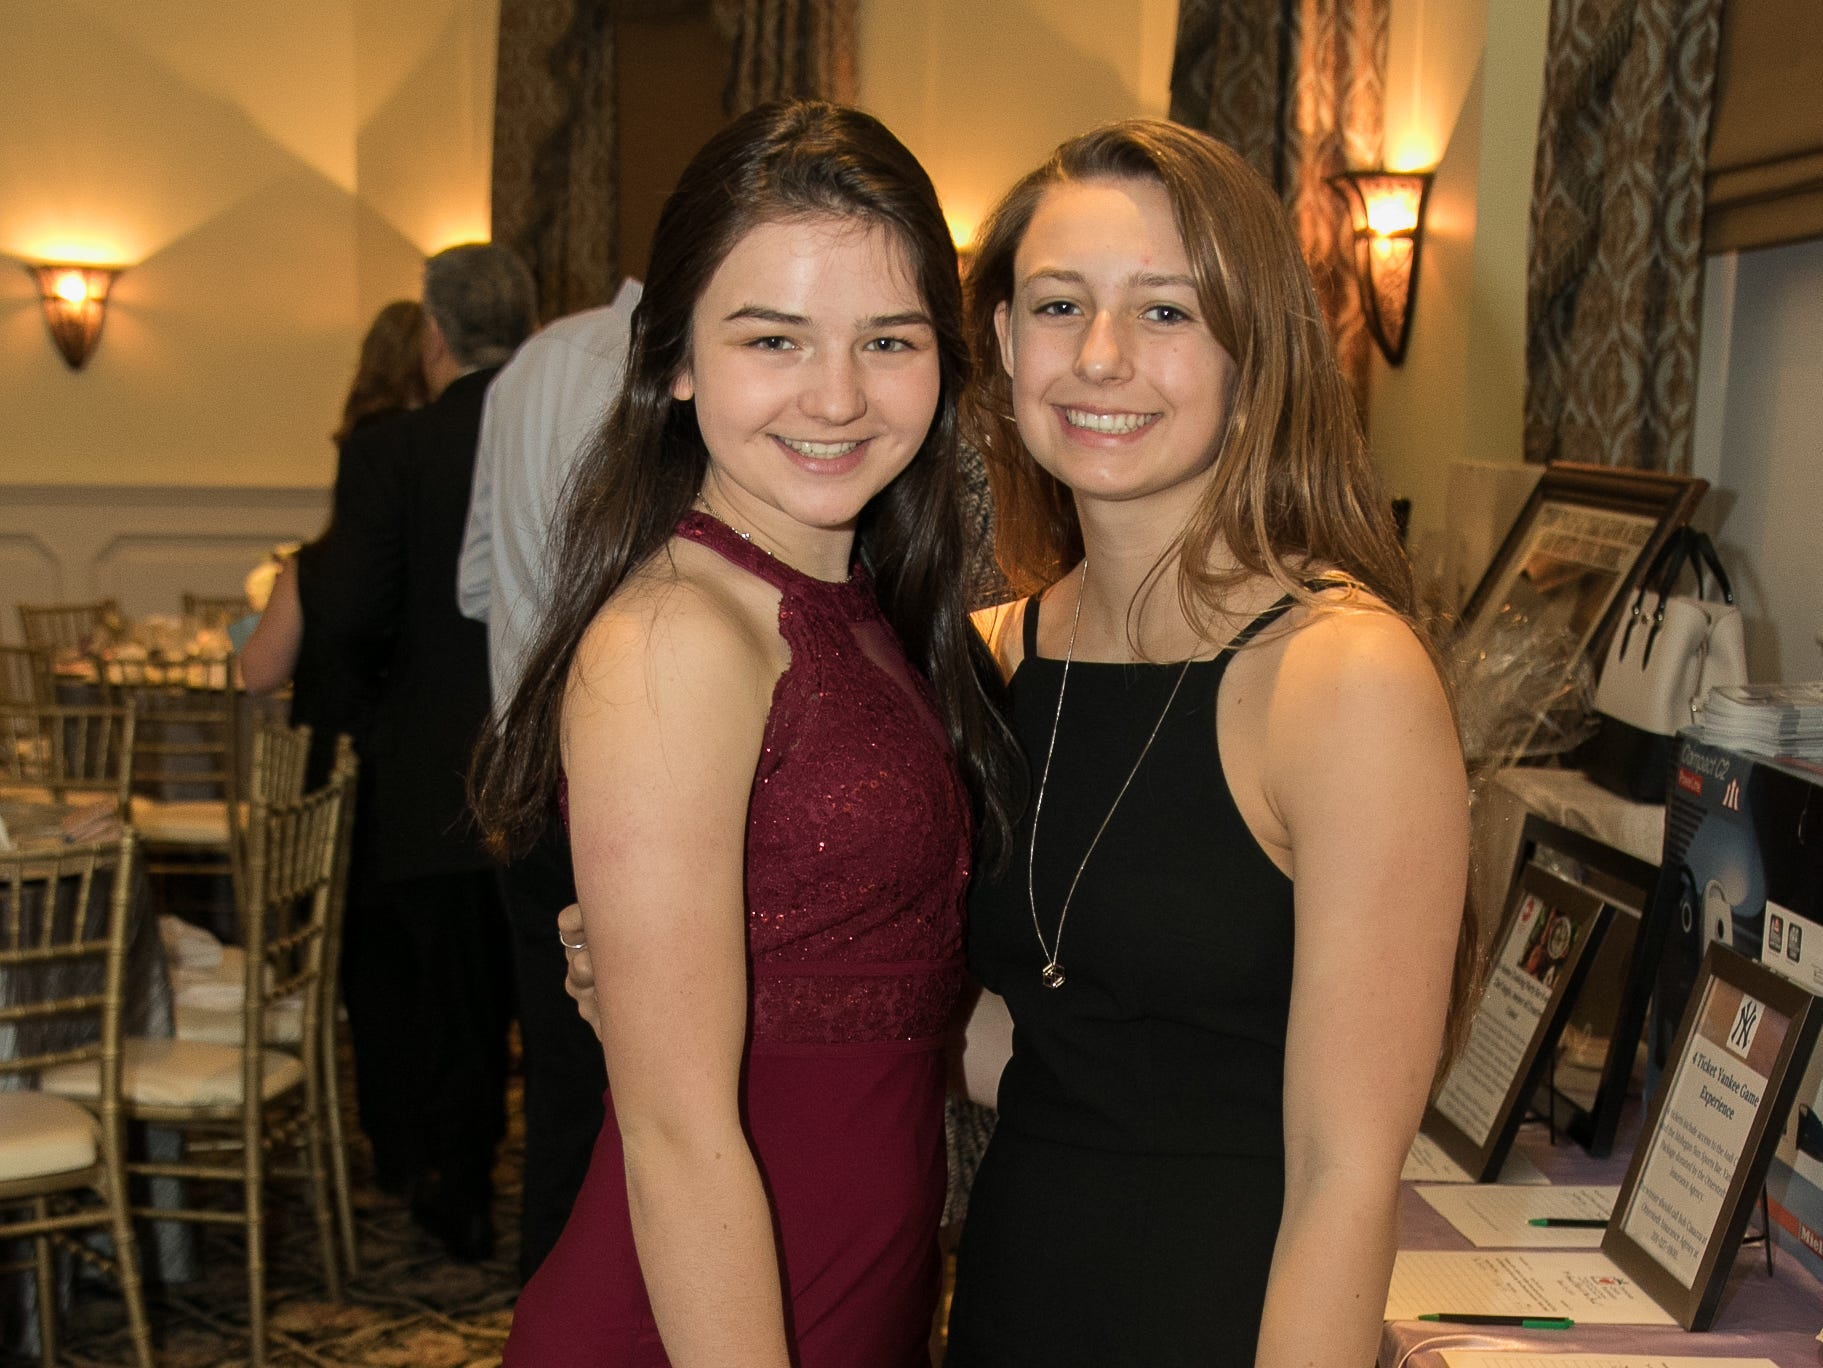 Lauren Diaz, Julia Caci. The Emmanuel Cancer Foundation 9th Annual Bash at The Brick House. 03/15/2019